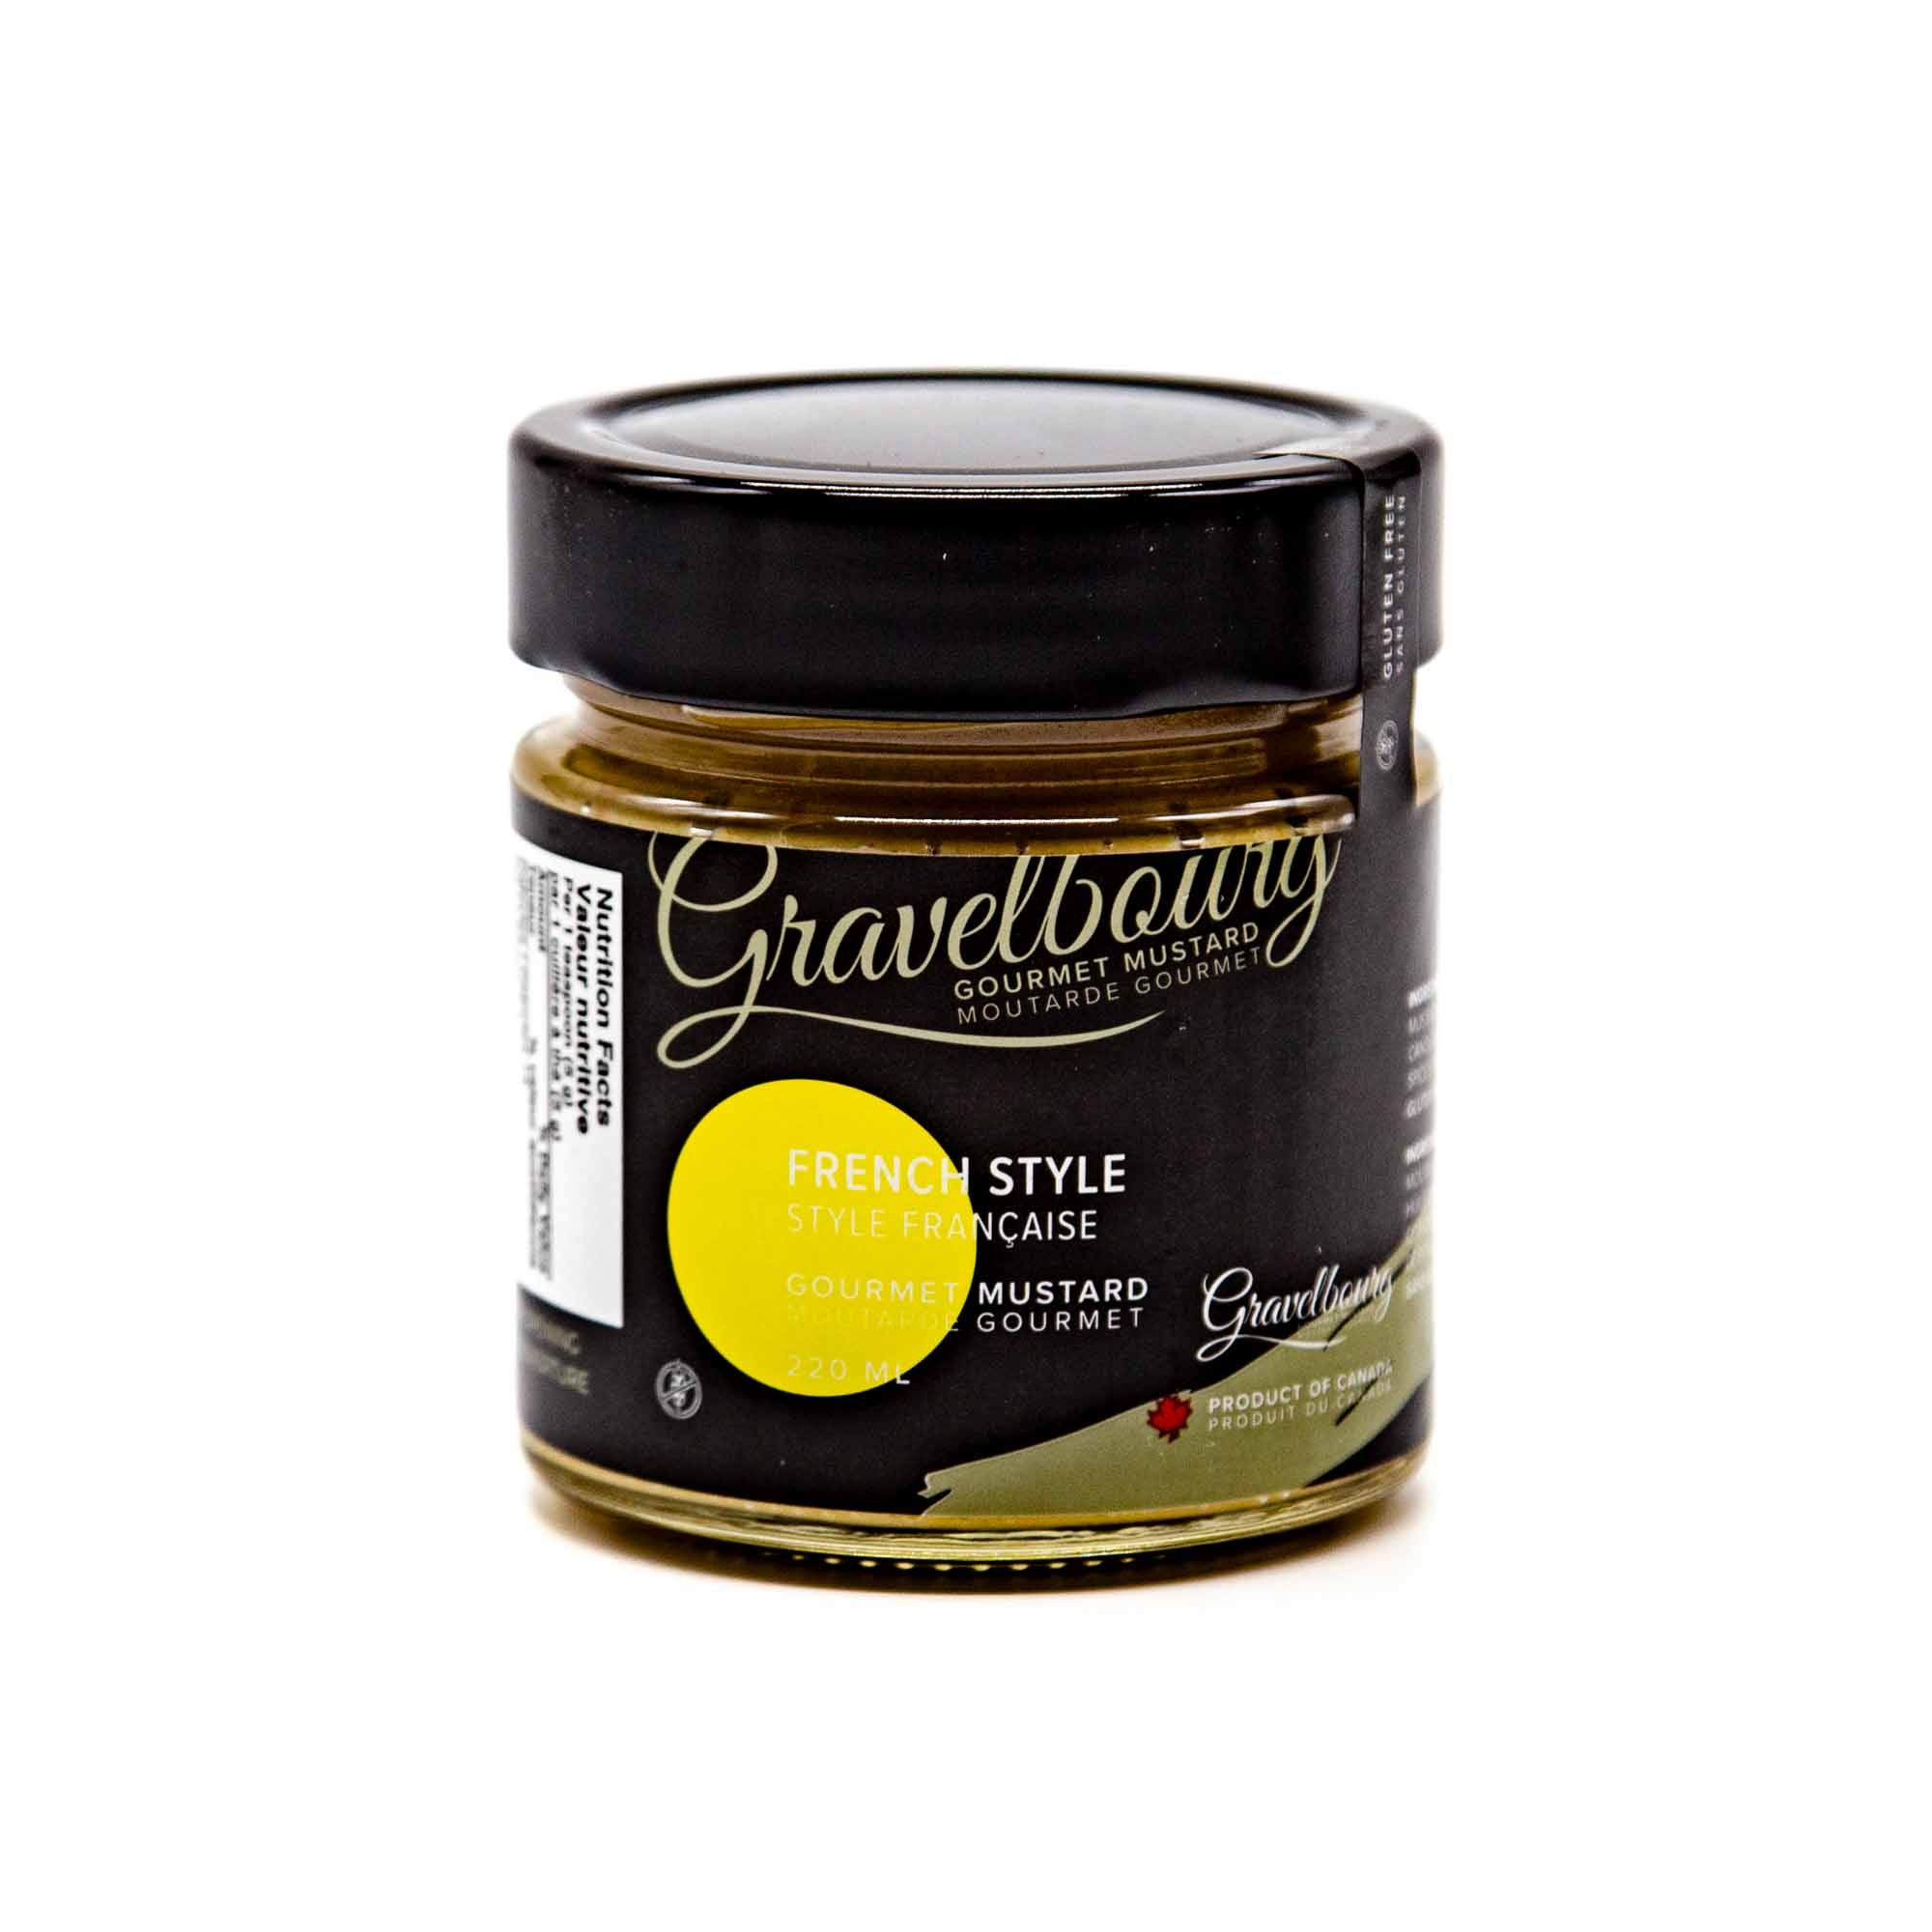 Gravelbourg Mustard - French Style Gourmet Mustard - Mortise And Tenon